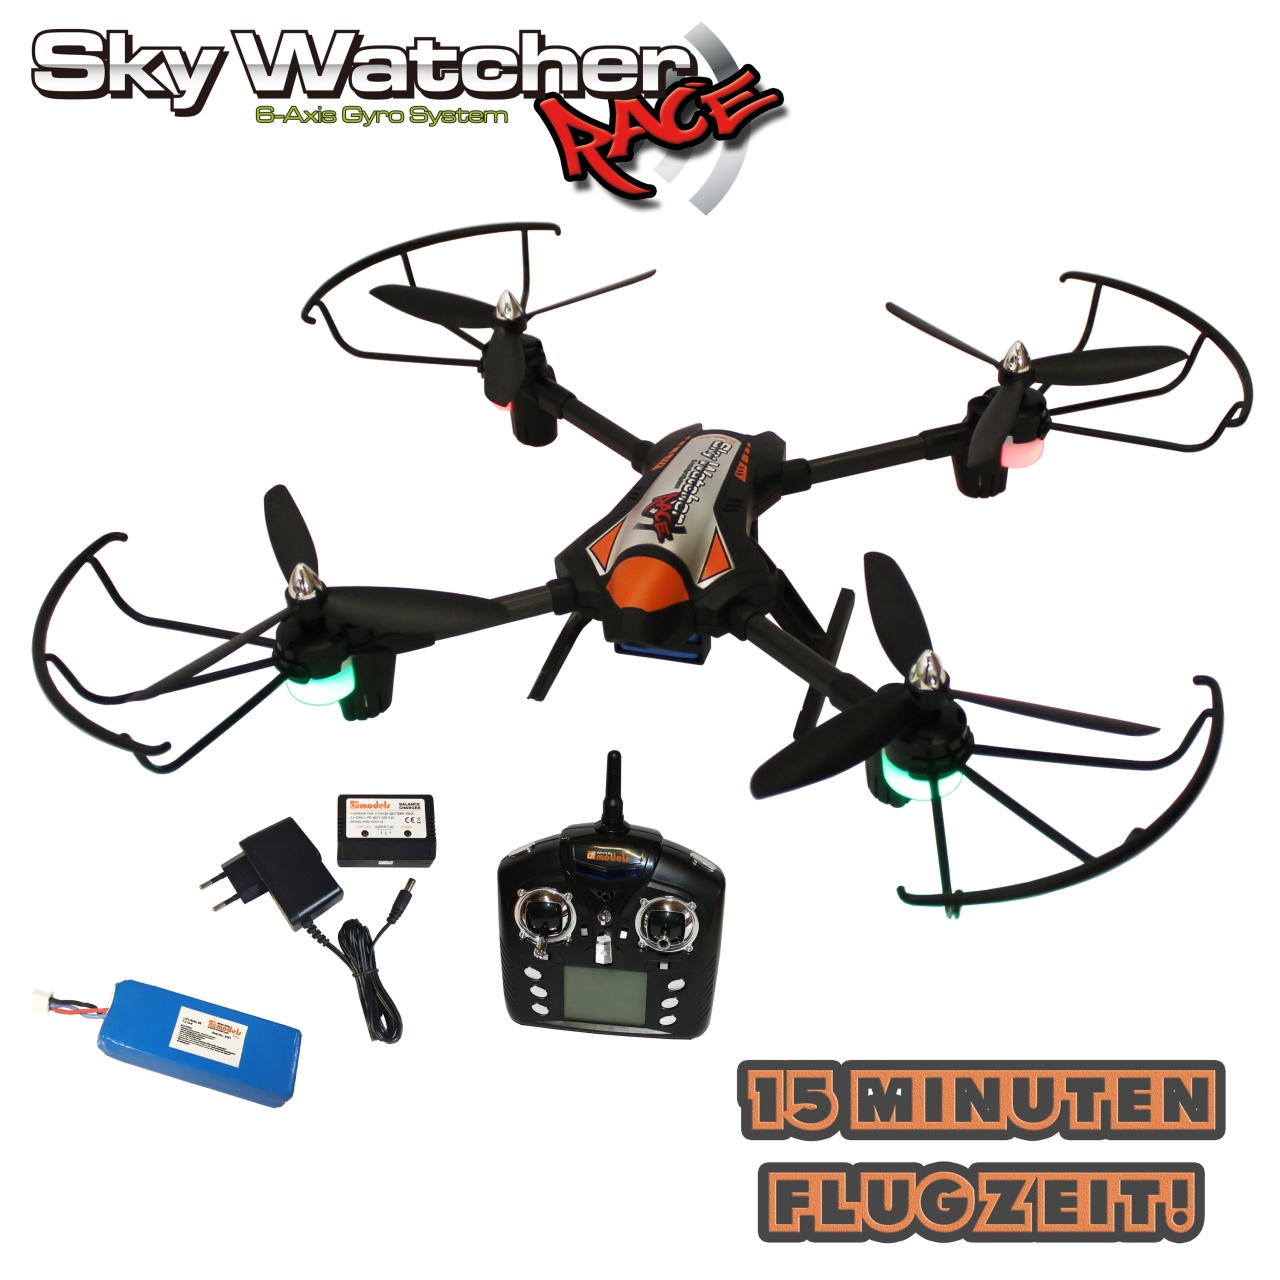 Sky Watcher RACE RTF + FPV